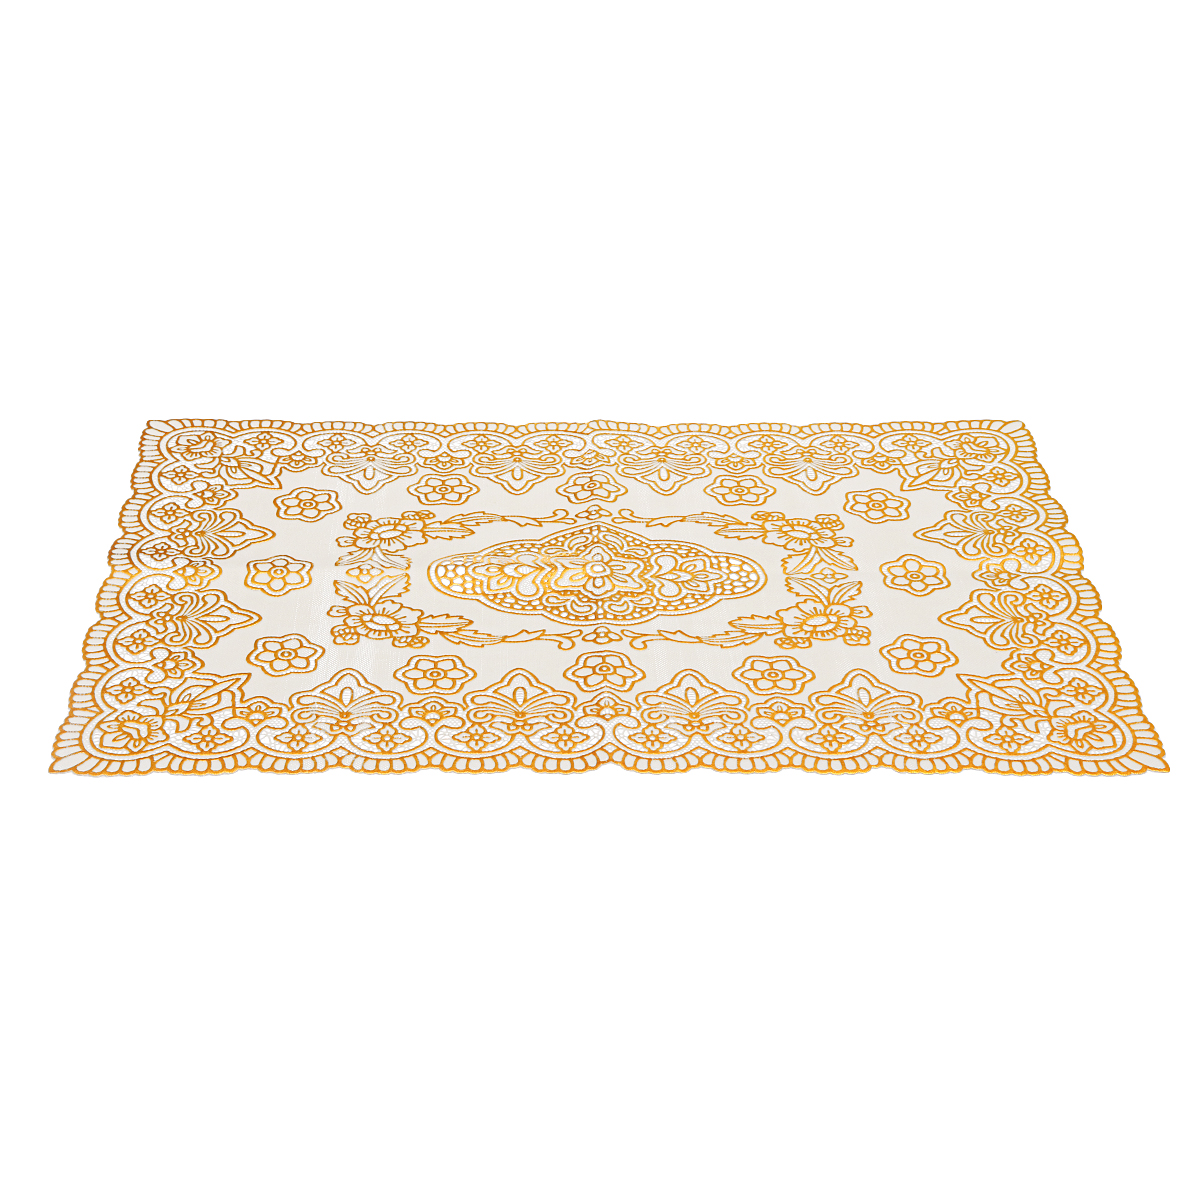 Disposable High Temperature Anti-hot Tablecloth Oval Coffee Table Pad Placemat Dinnerware